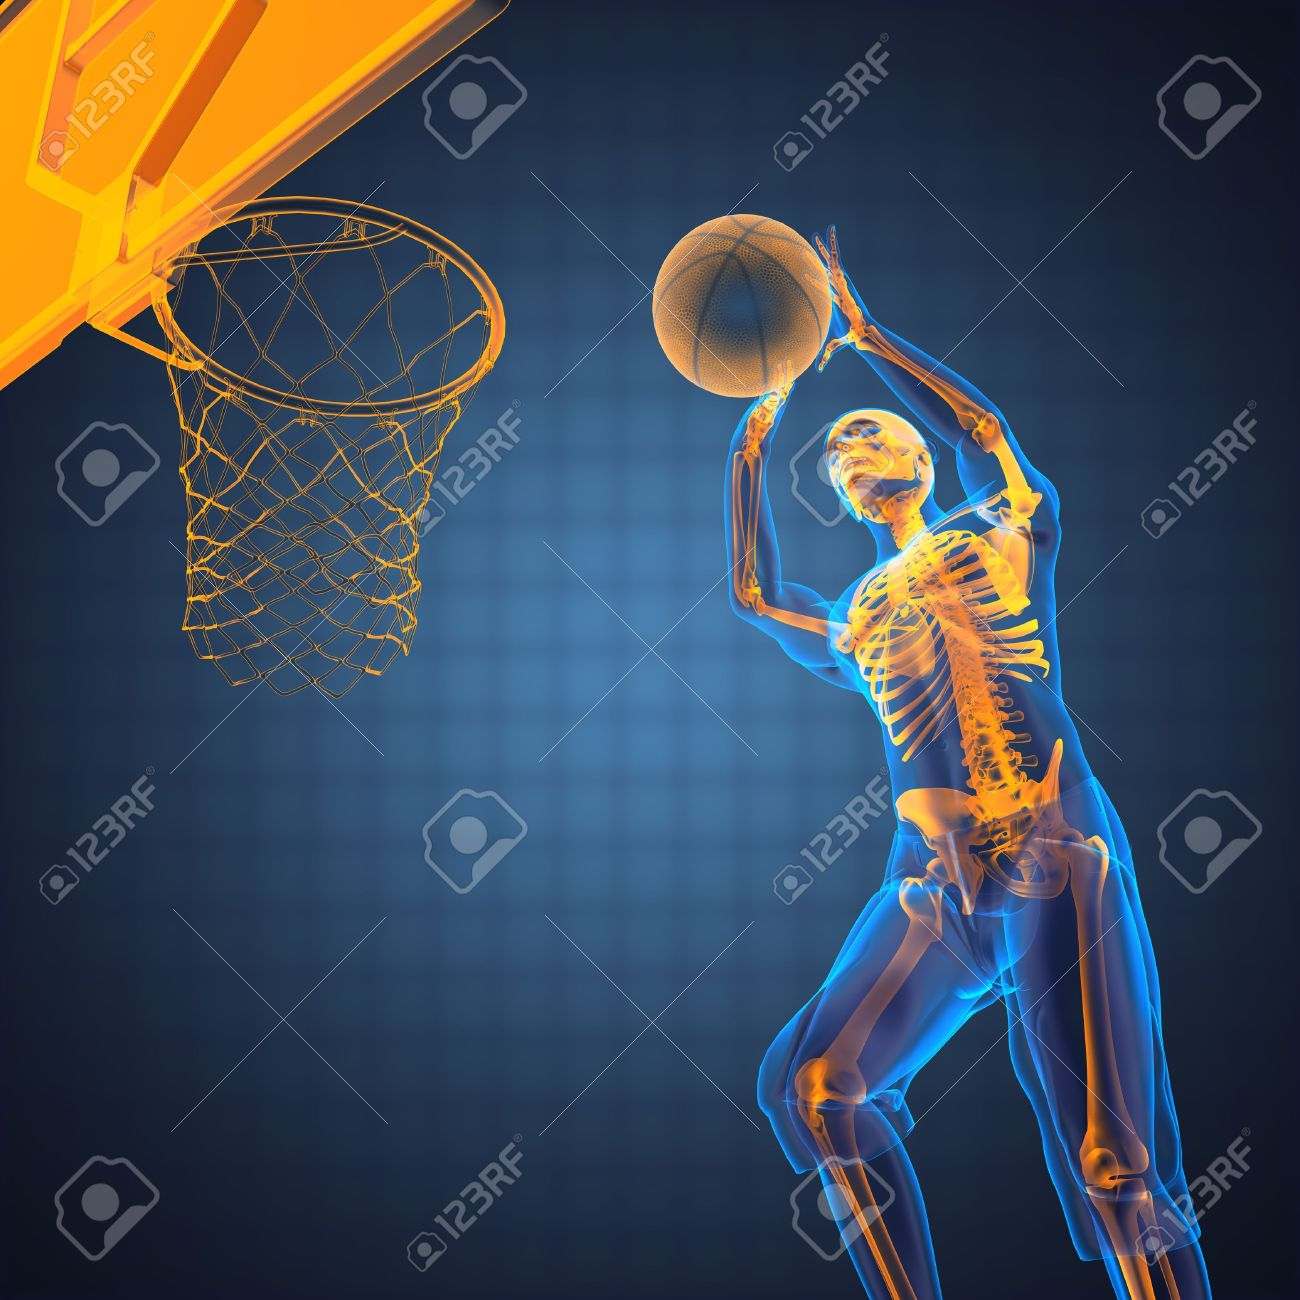 basketball game player made in 3D Stock Photo - 12602174